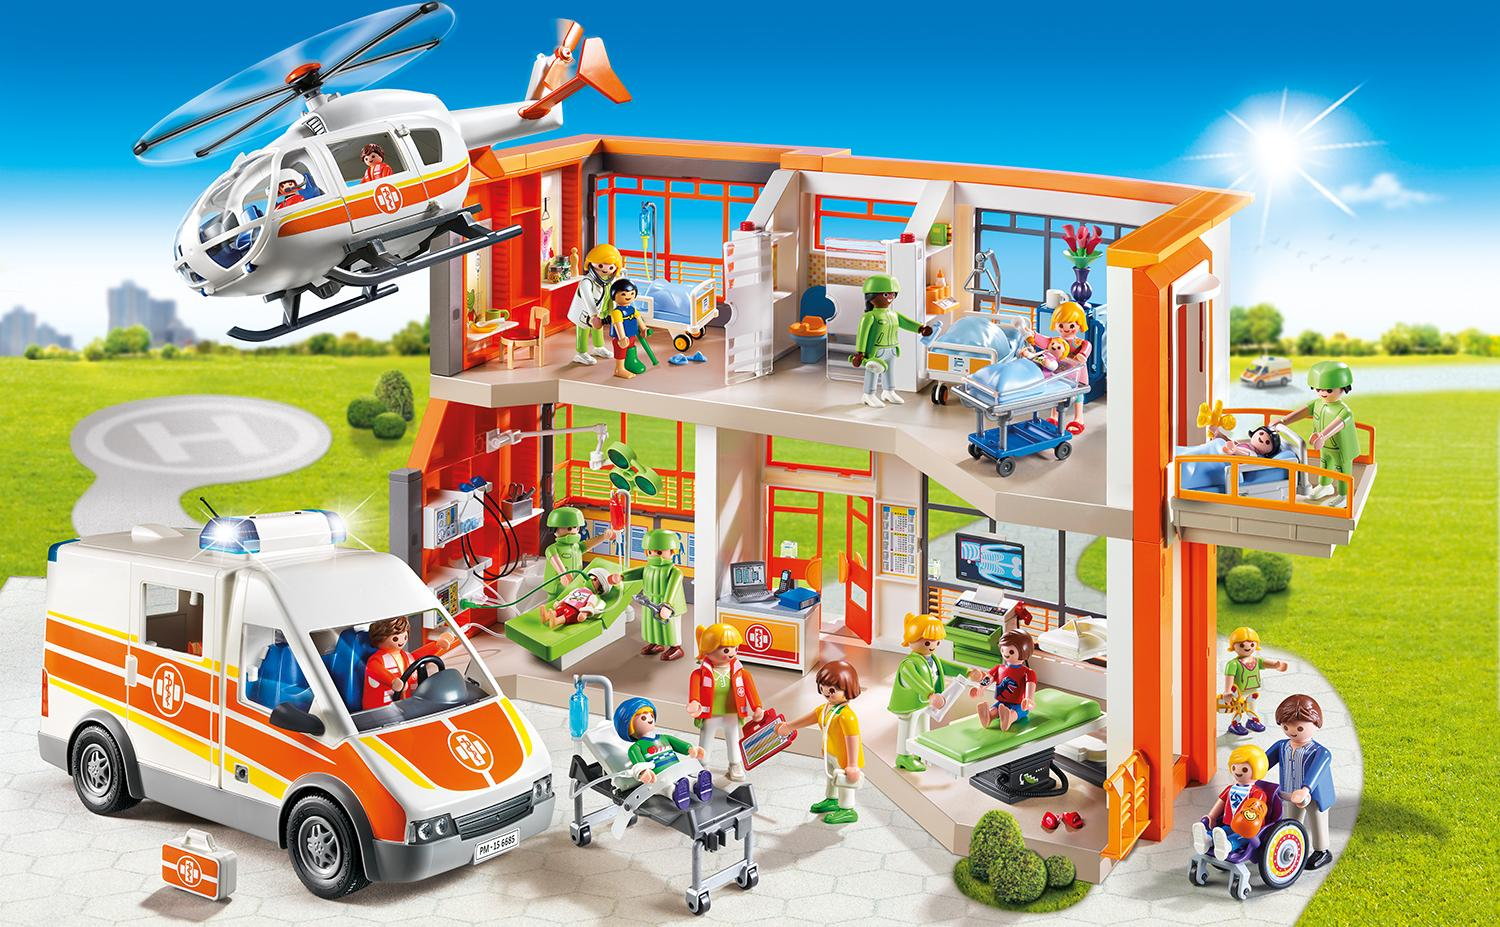 helicopter toys with B00vlv4zee on Uh1 Huey Us Army furthermore Iotti Original Genuine Wifi818 2 4g Remote Real Time Transmission Of Remote Camera Module U818s as well Watch in addition Rc Boat Toys besides Playmobil Police Bike.